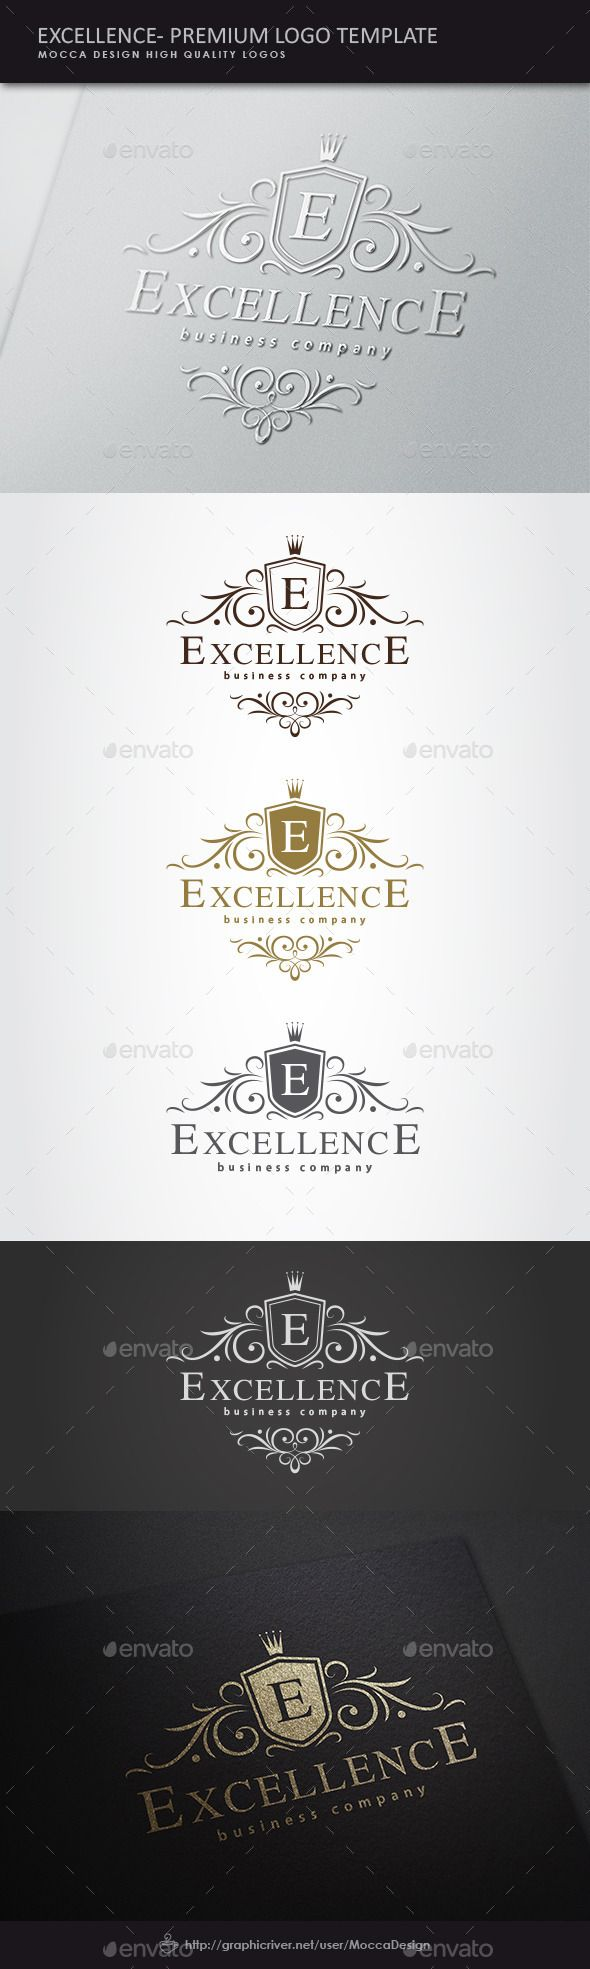 Excellence is a clean and professional logo template suitable for any kind of business or personal identity related to royalty, heraldry as heraldic emblems, wedding accessories, a law firm, deluxe and beauty products, a real estate business, an elegant beauty salon, royal brands, luxury industry like jewelry, premium hotels, fancy restaurants, fashion, perfumes, high quality wines or any other business area.